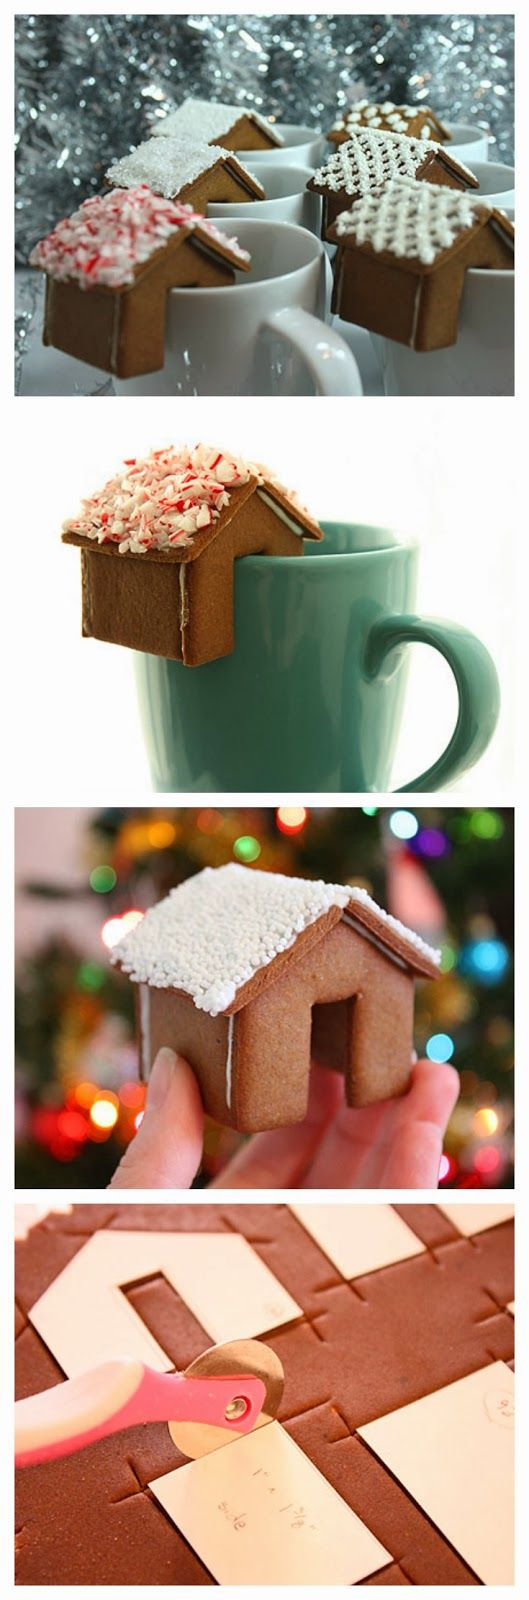 Gingerbread houses that perch on your mug